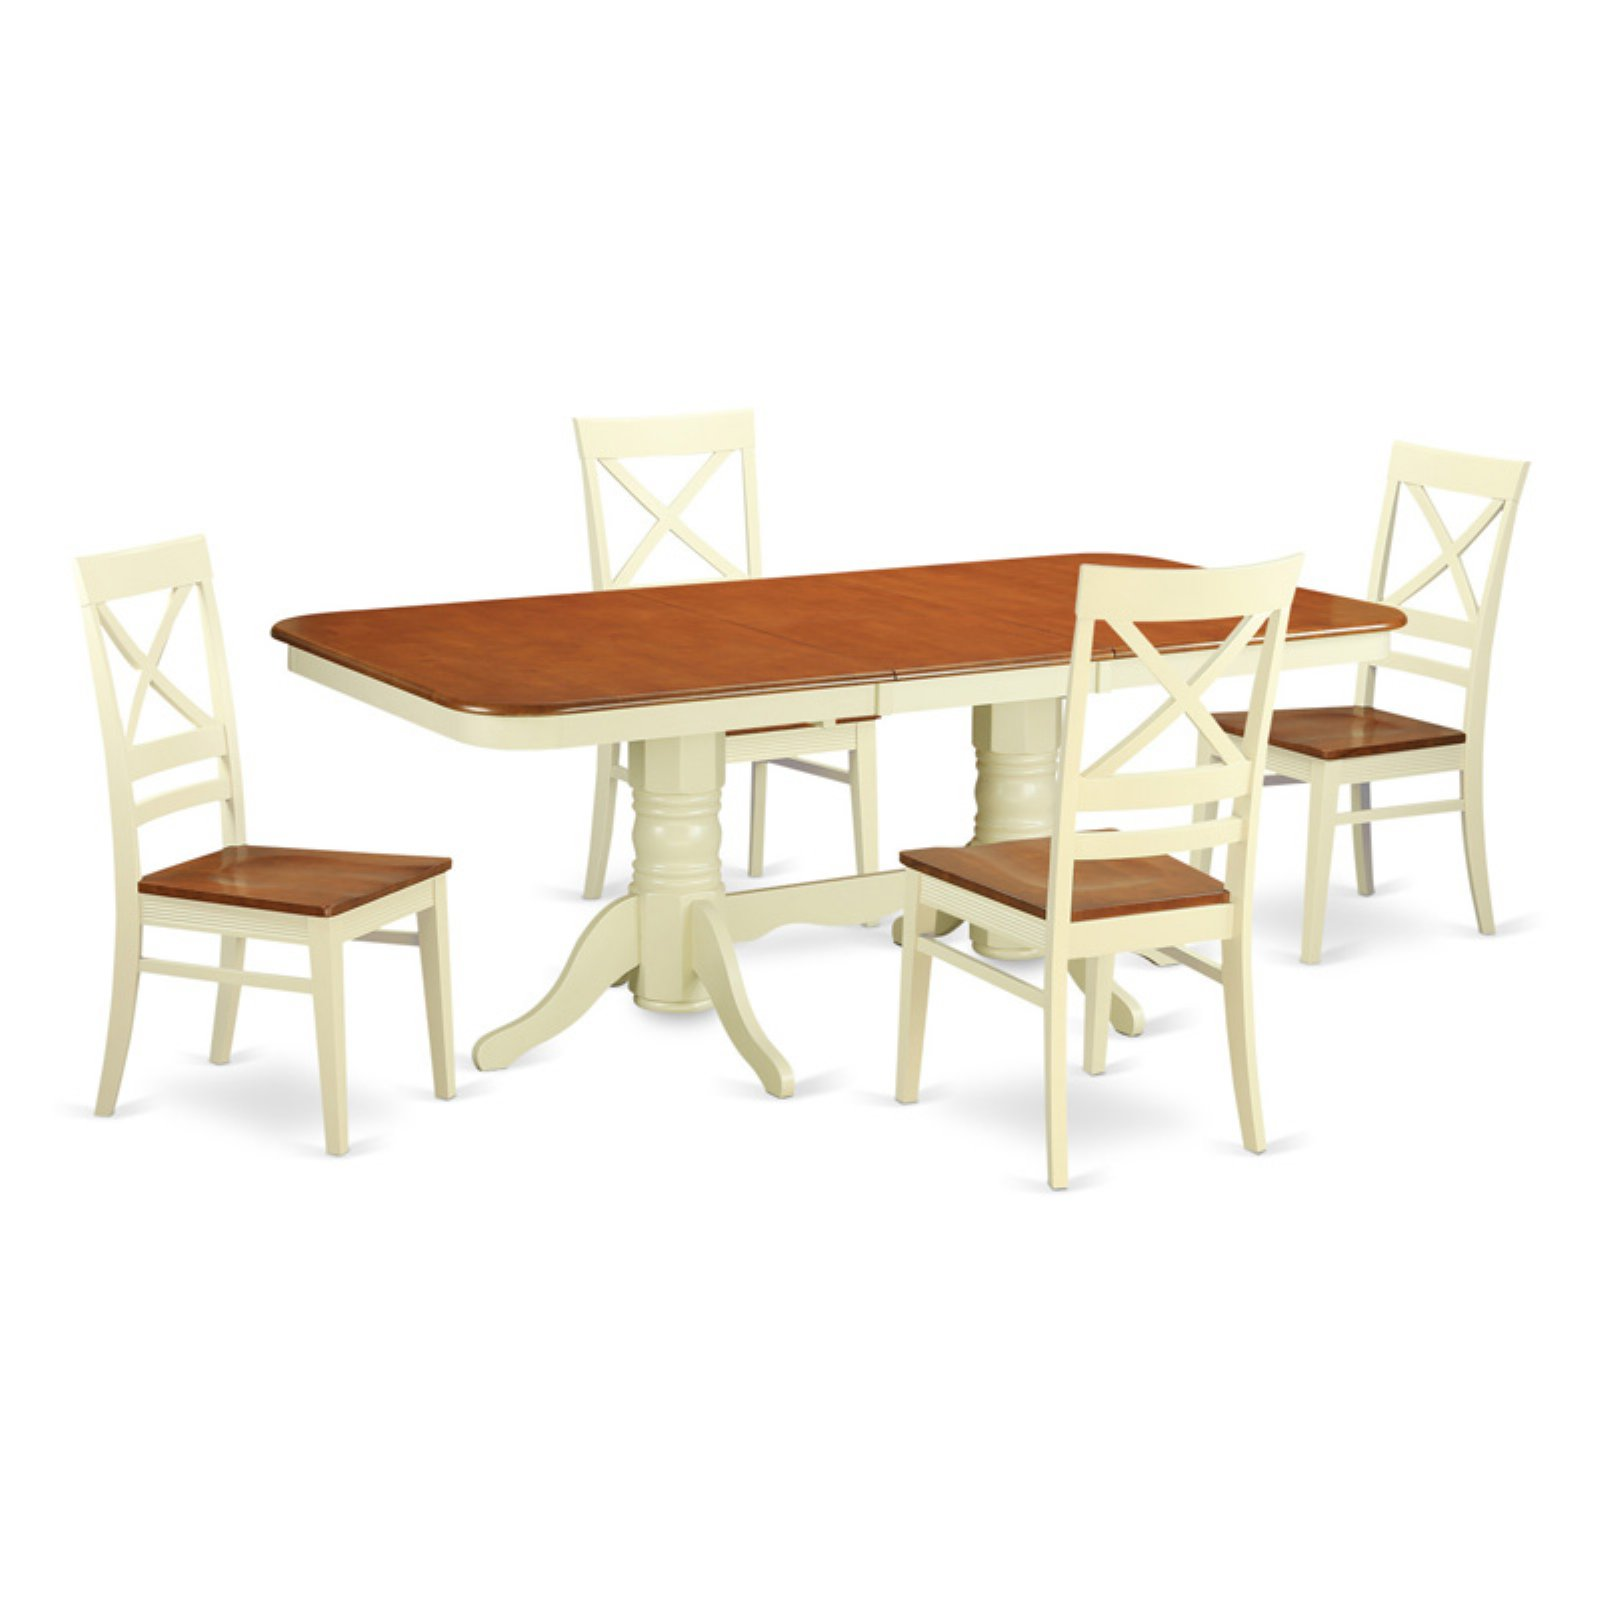 East West Furniture Napoleon 5 Piece Dining Table Set with Quincy Wooden Chairs